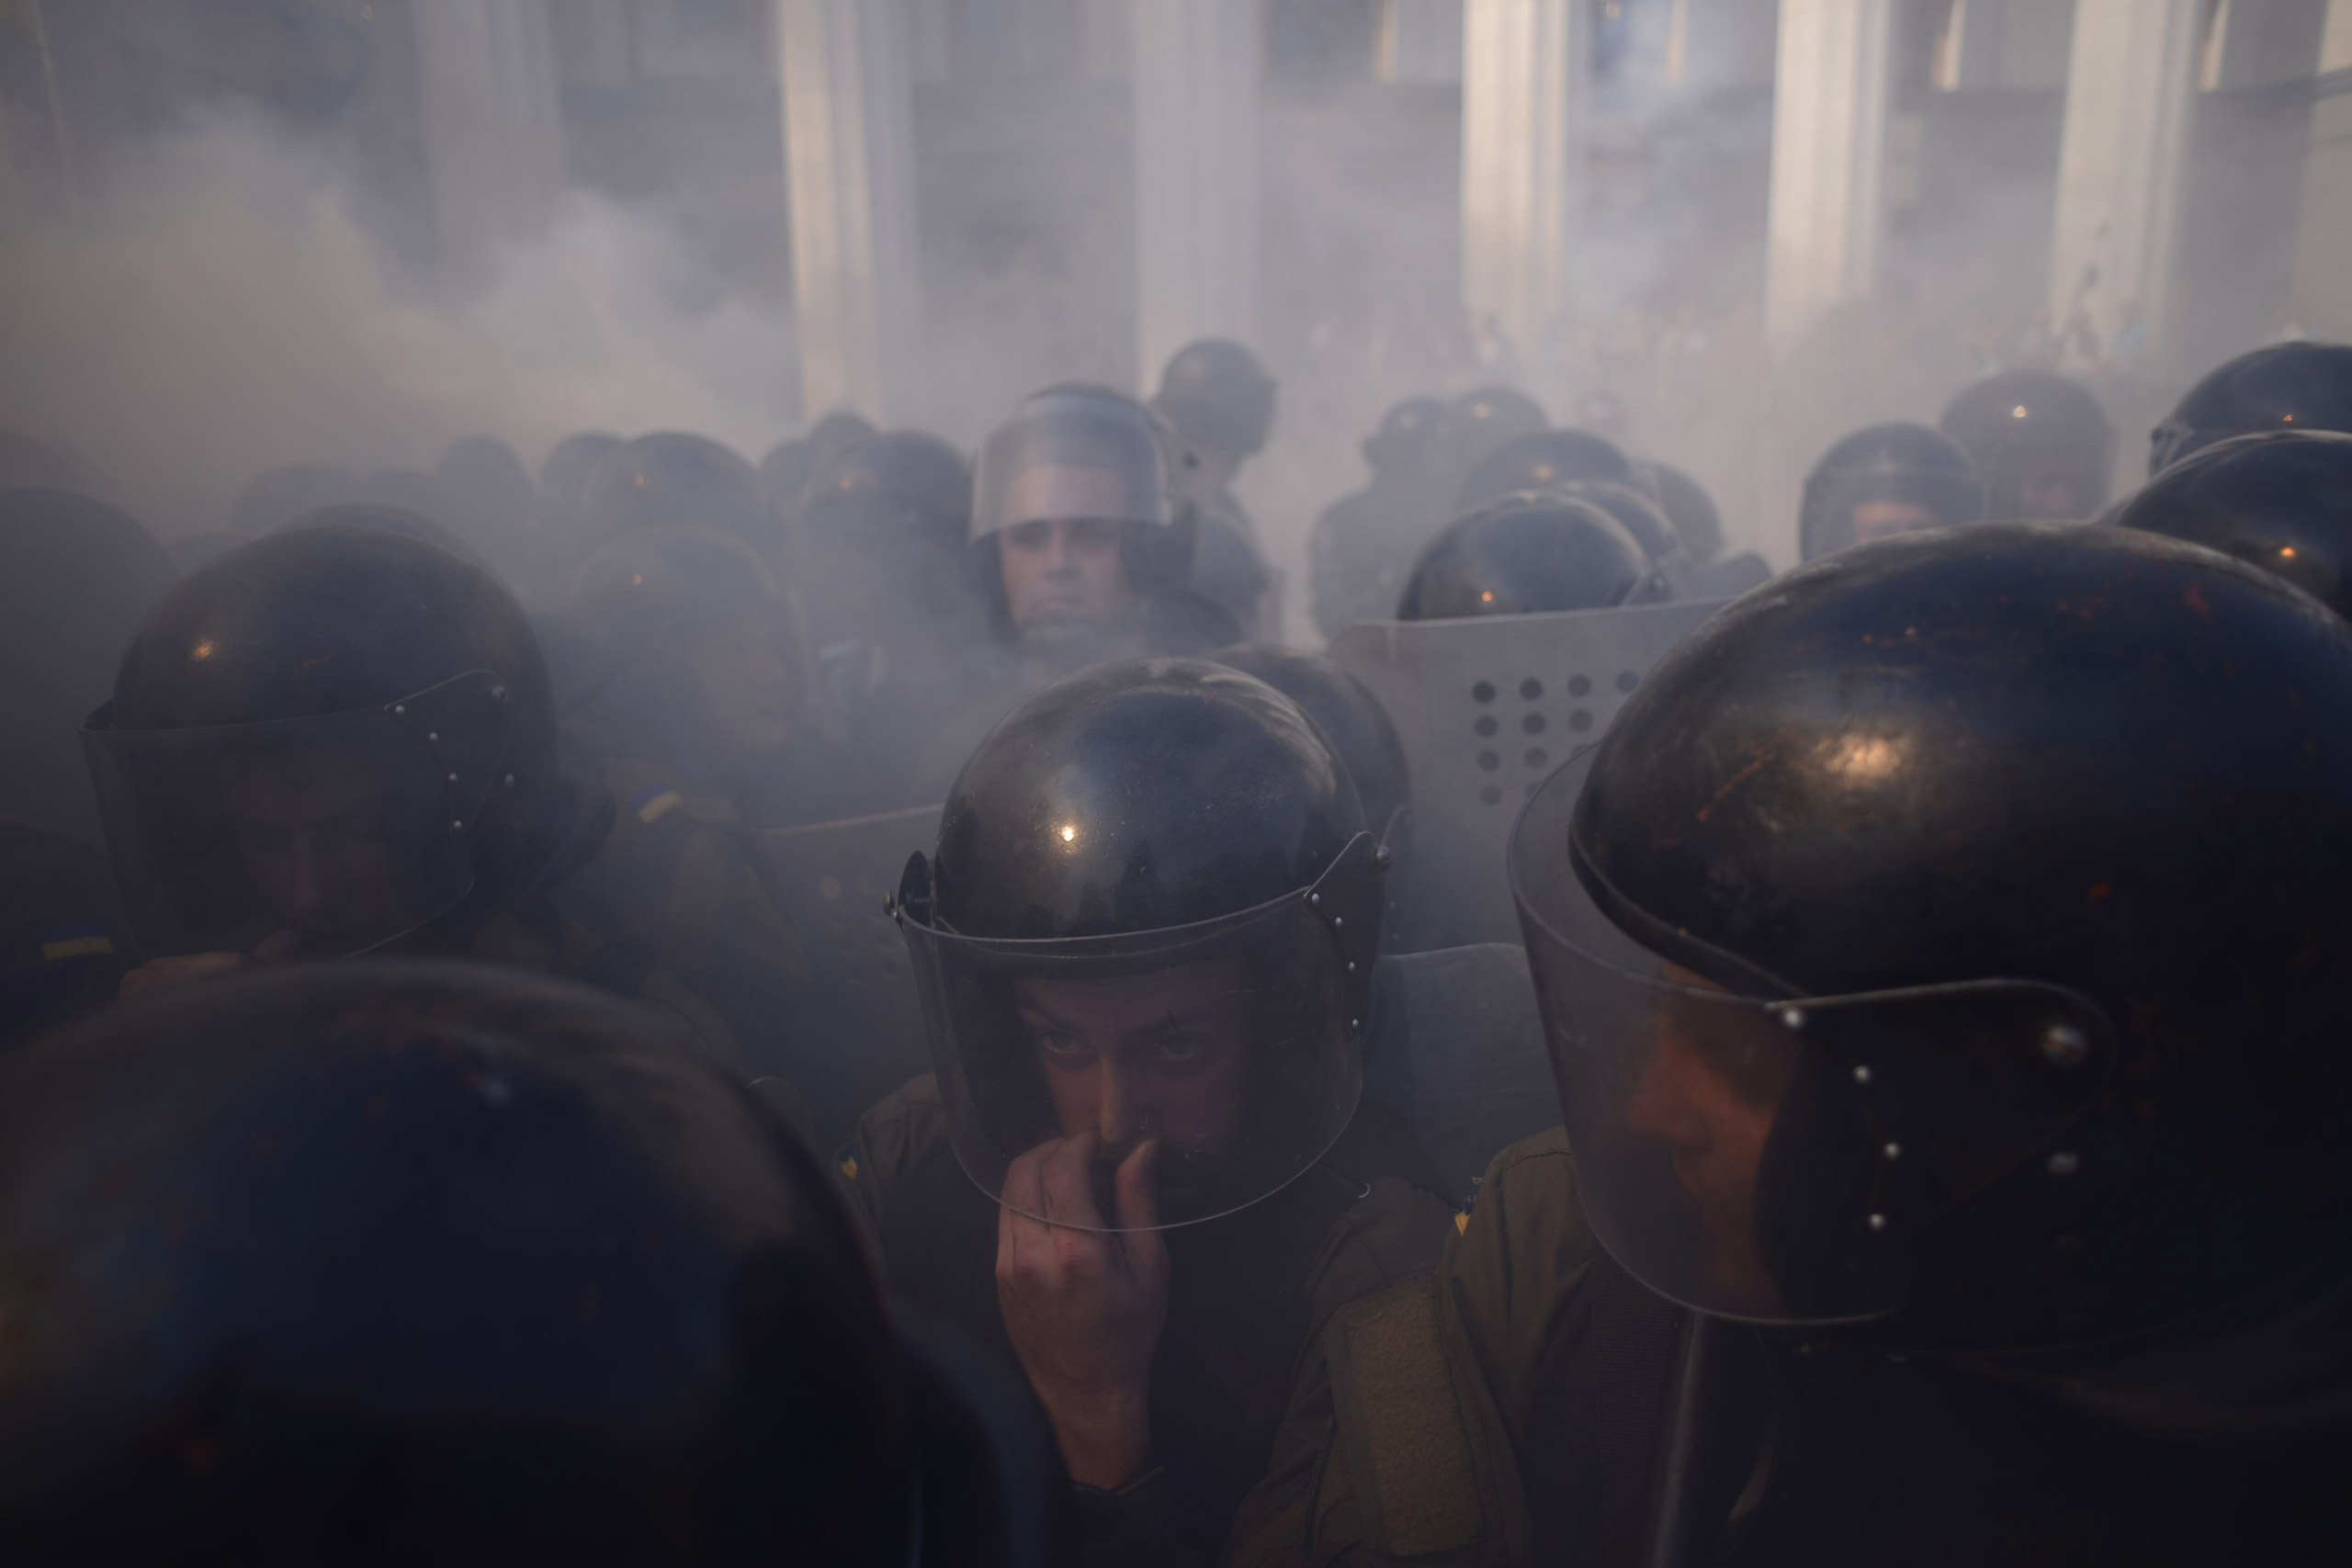 Police stand among rising smoke near the parliament building in Kiev, Ukraine, on Aug. 31, 2015.